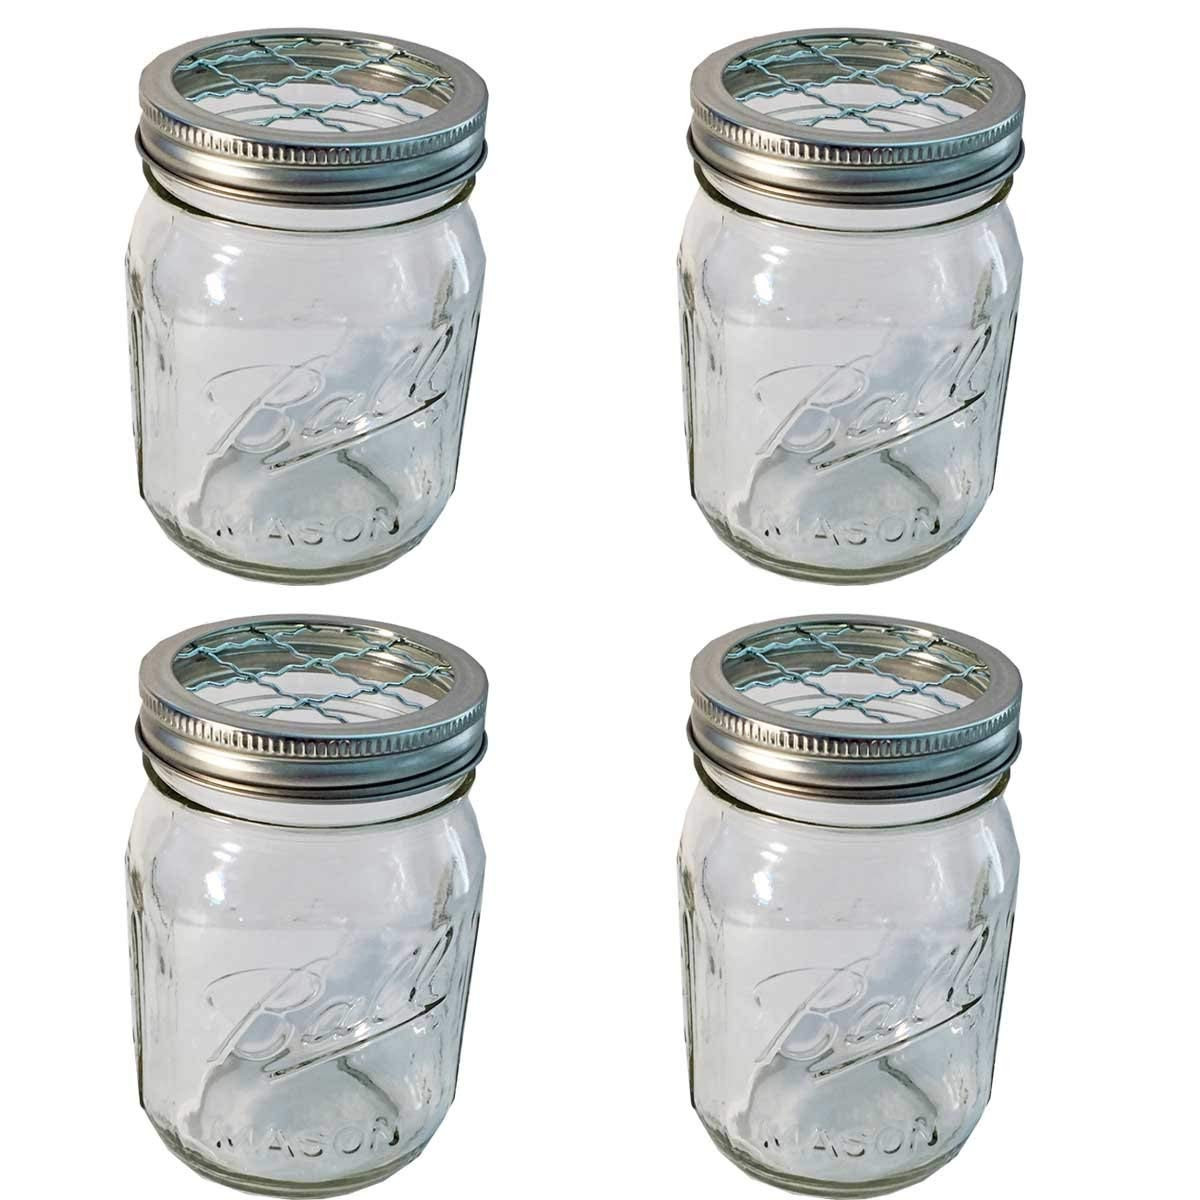 20 Nice Mason Jar Vases with Ribbon